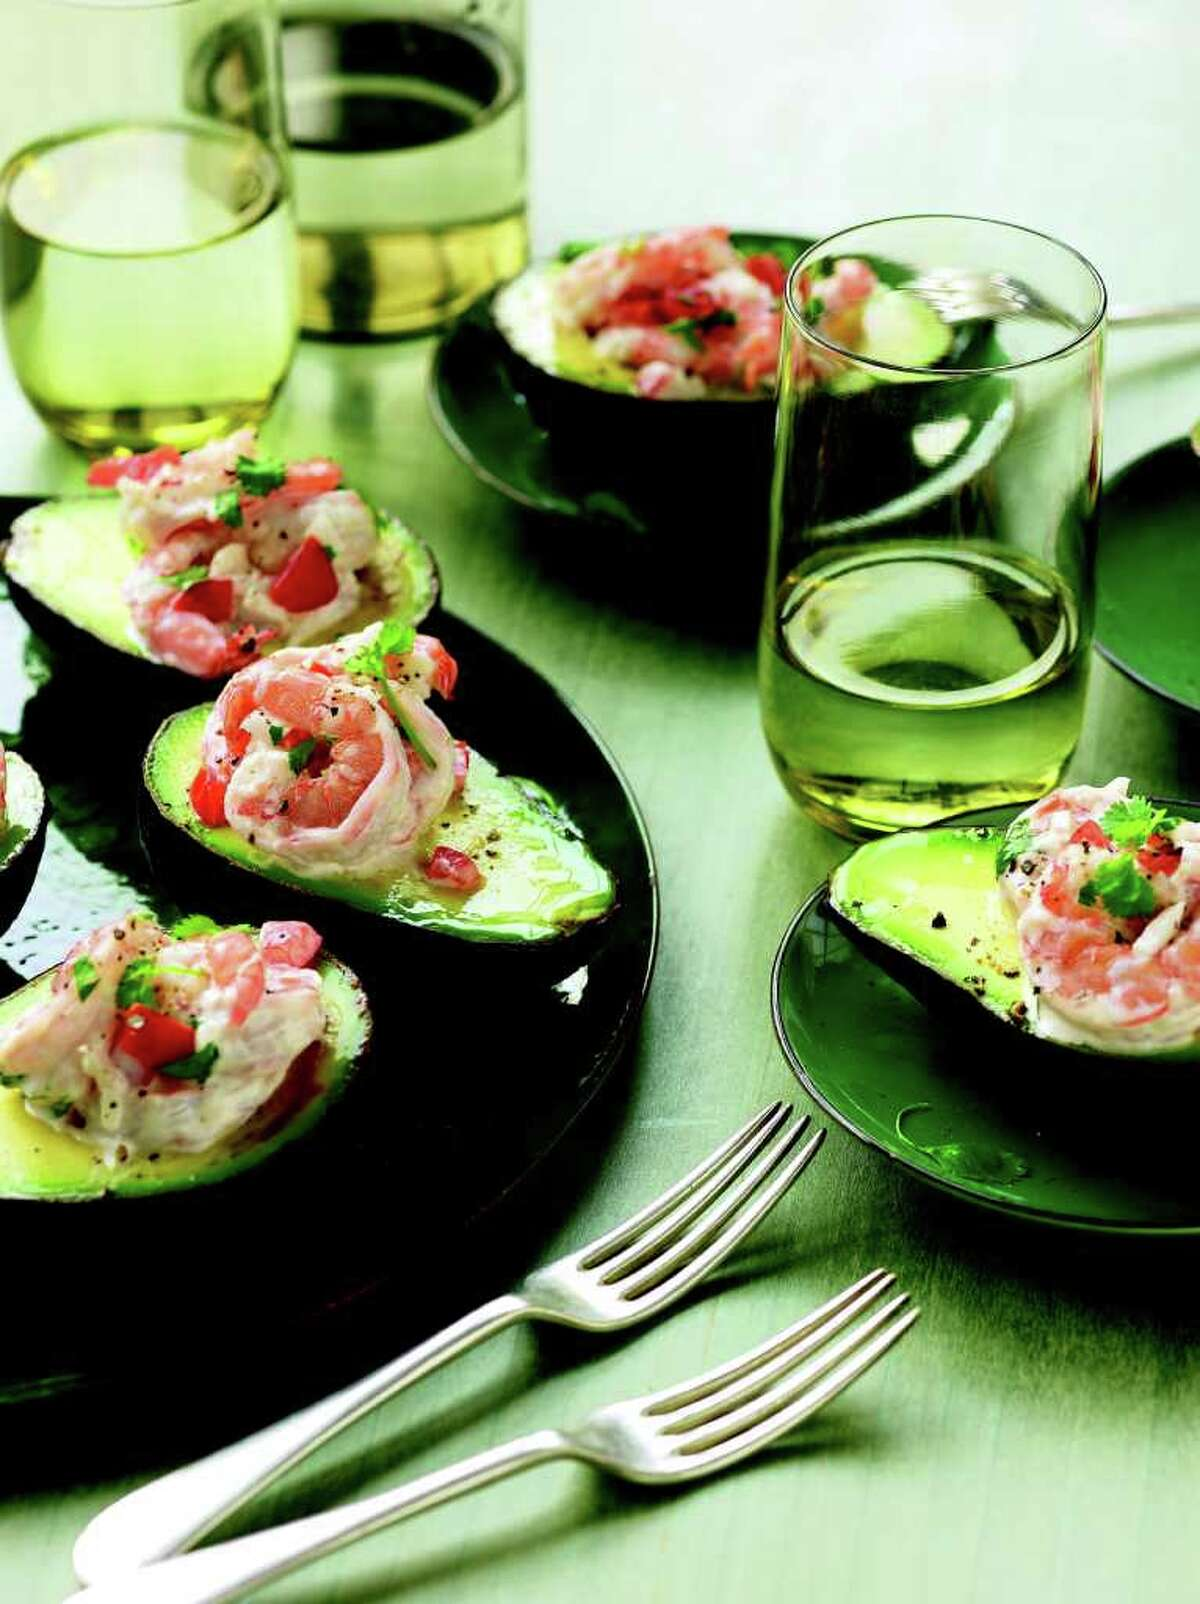 Longoria, who co-owns two Beso restaurants, also included the recipe for Avocado Stuffed with Shrimp